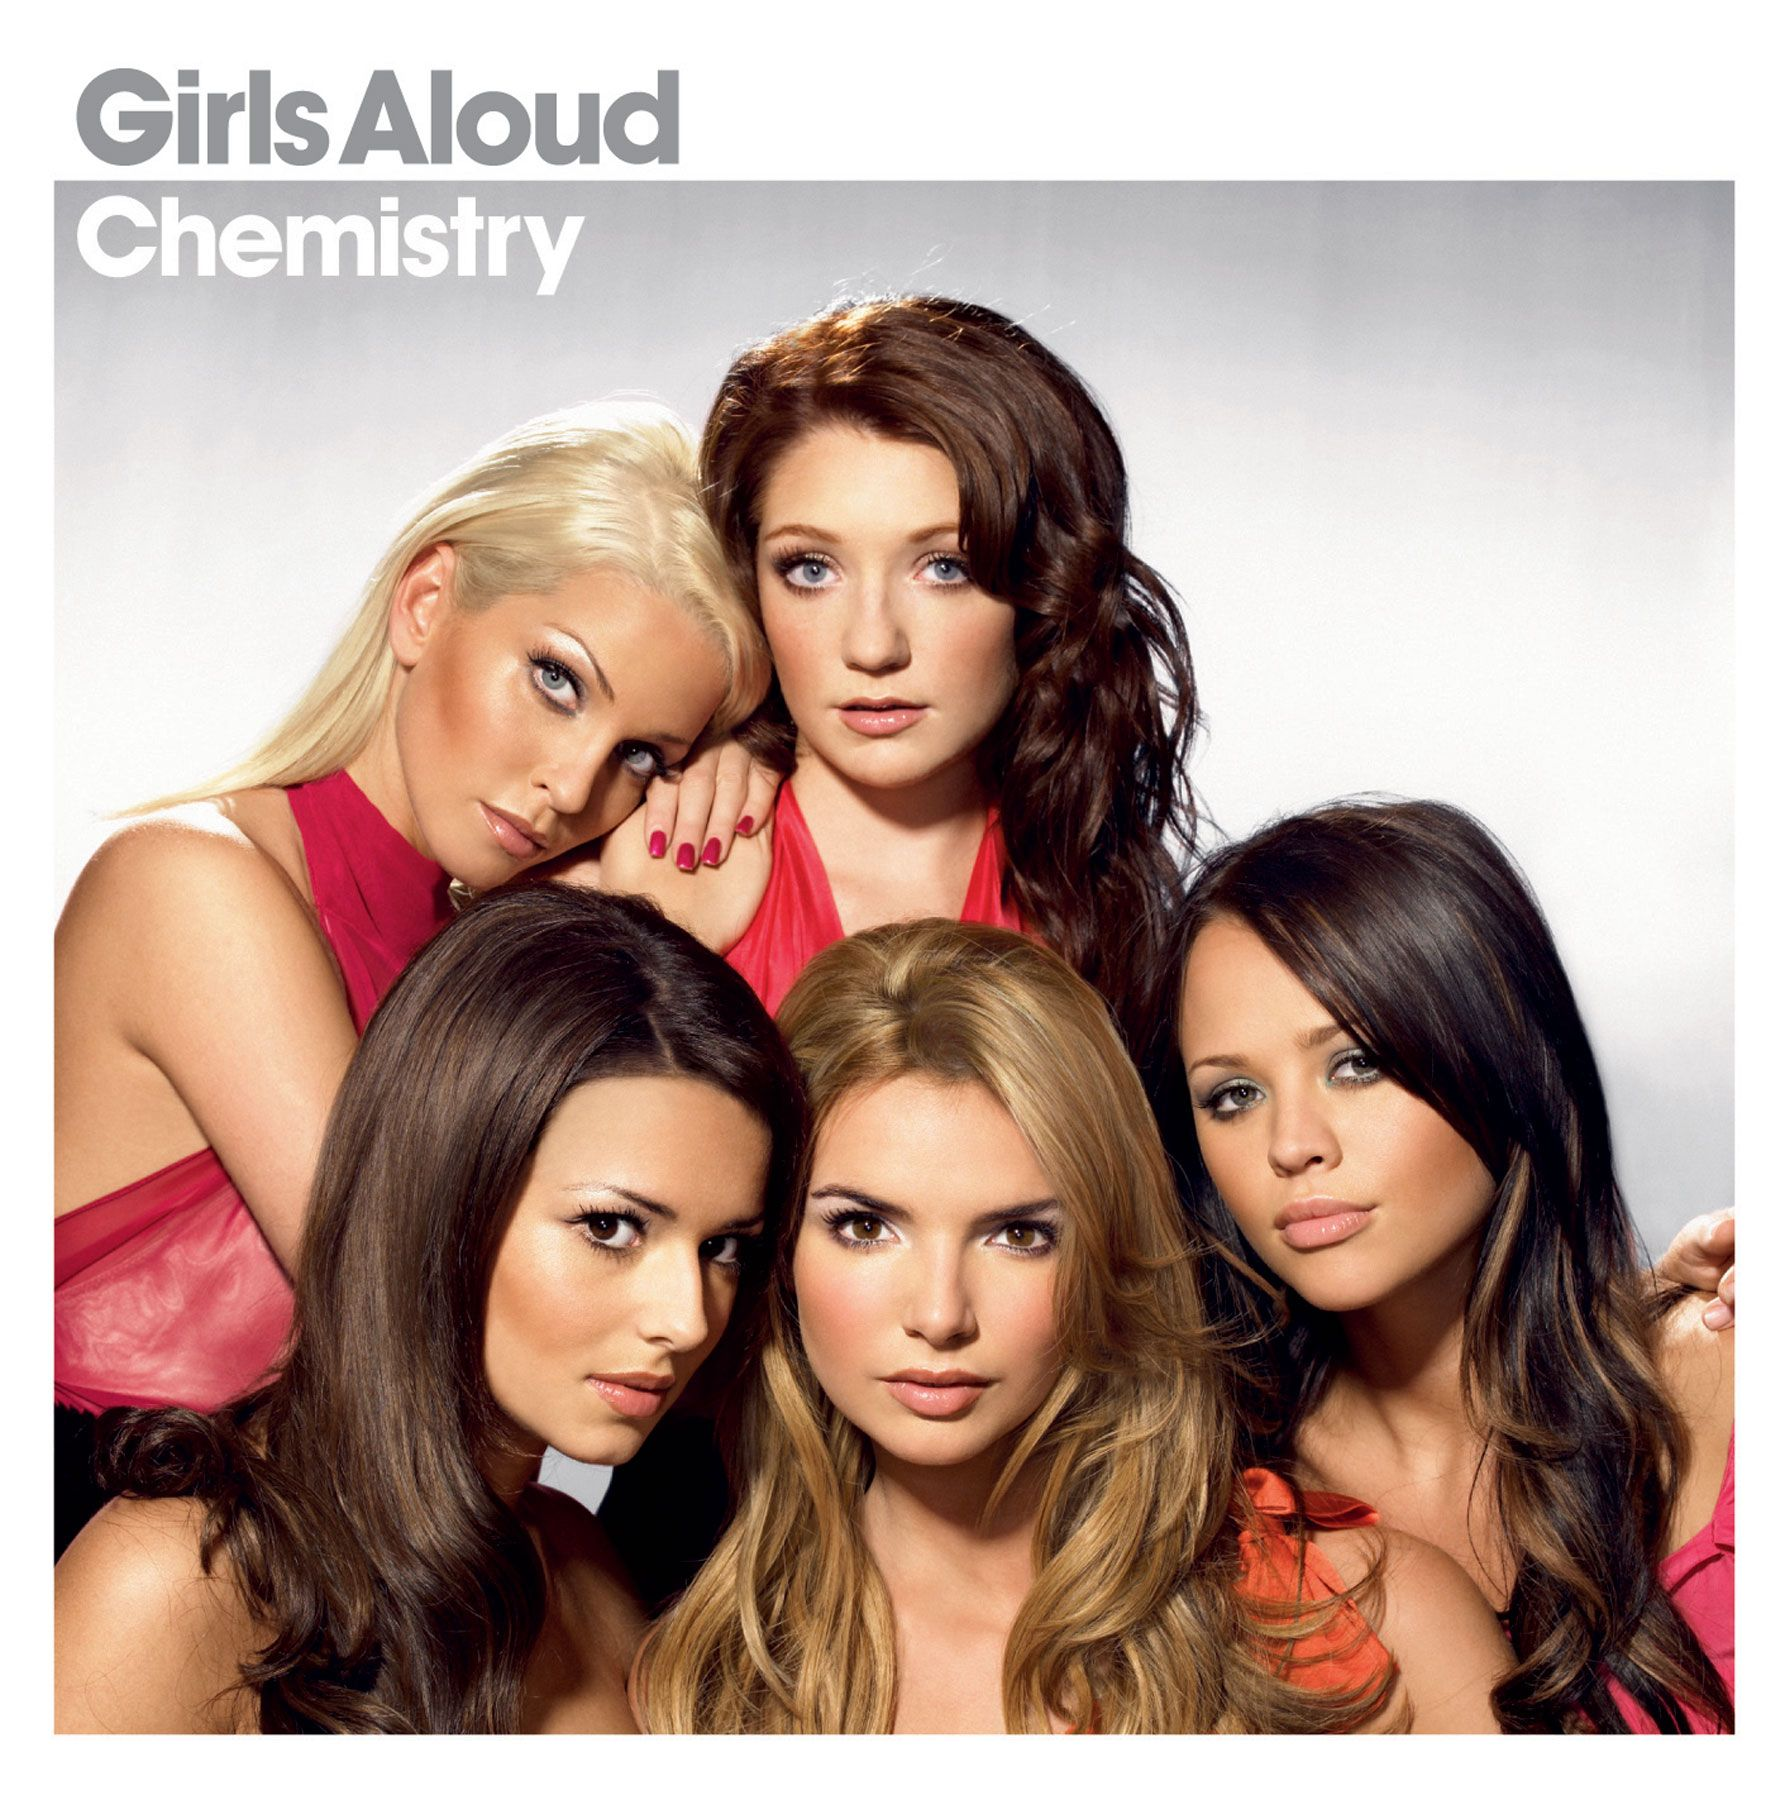 Girls Aloud - Chemistry album cover